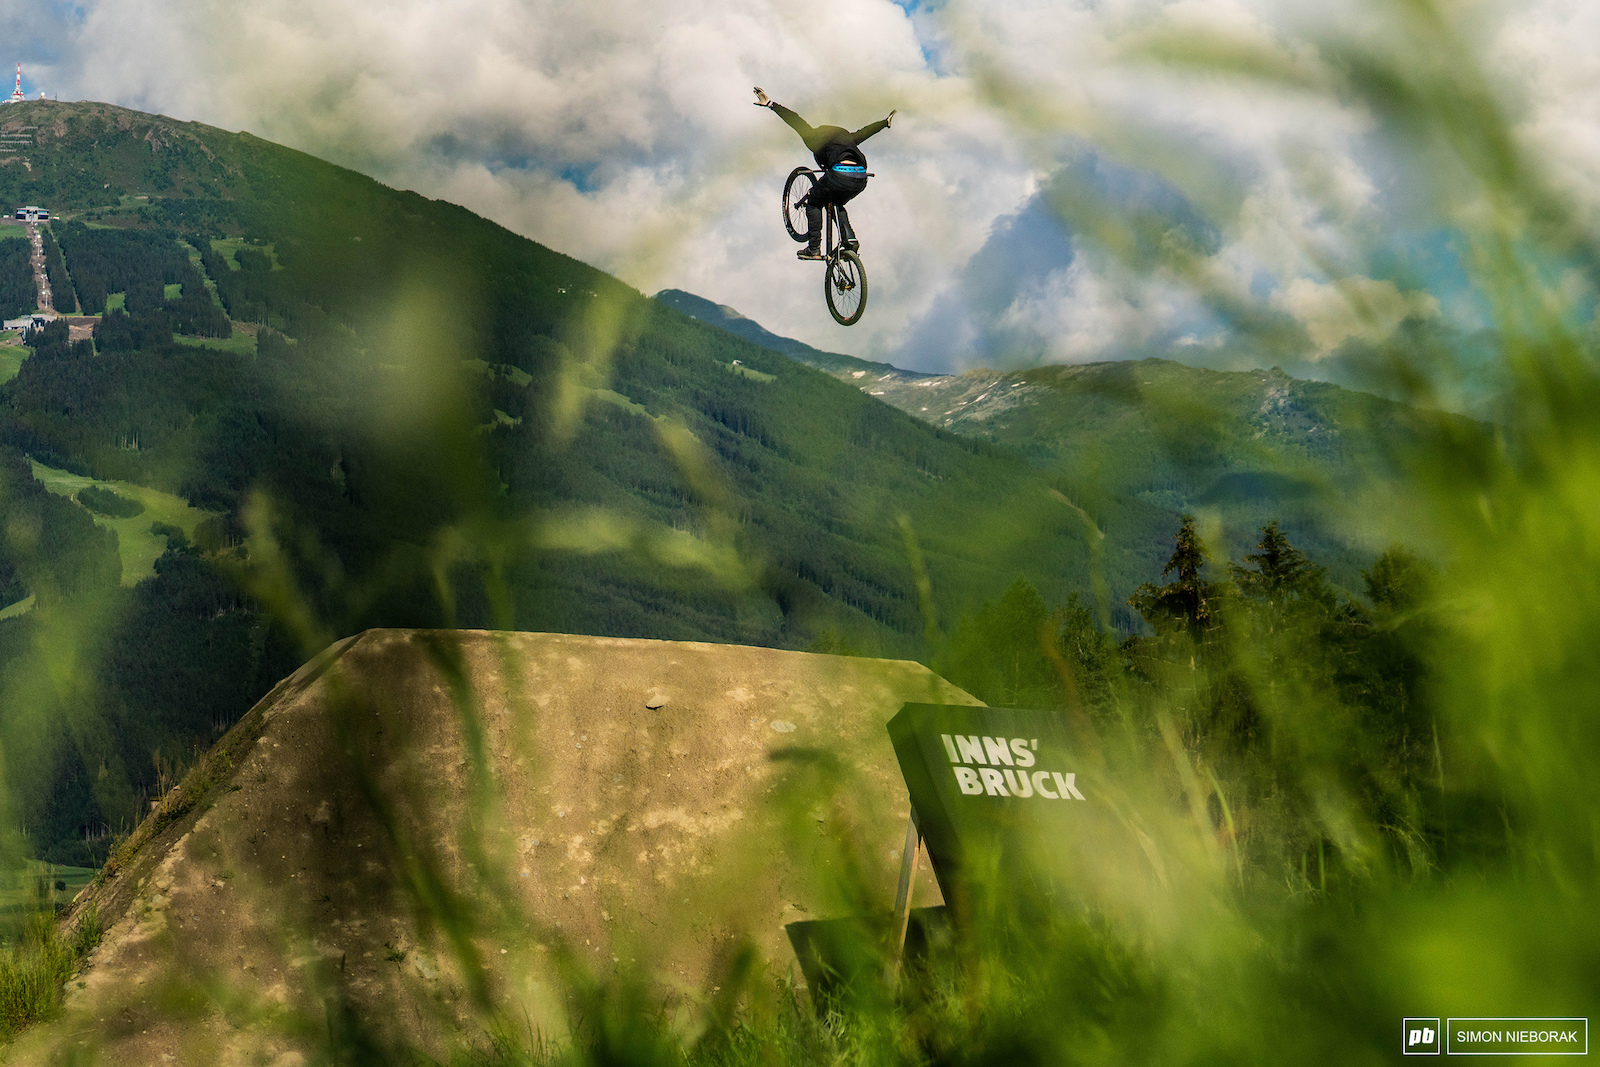 The one and only Nicholi Rogatkin. He did it again - won the battle of the tricks and nerves with all the other riders of Crankworx Innsbruck.